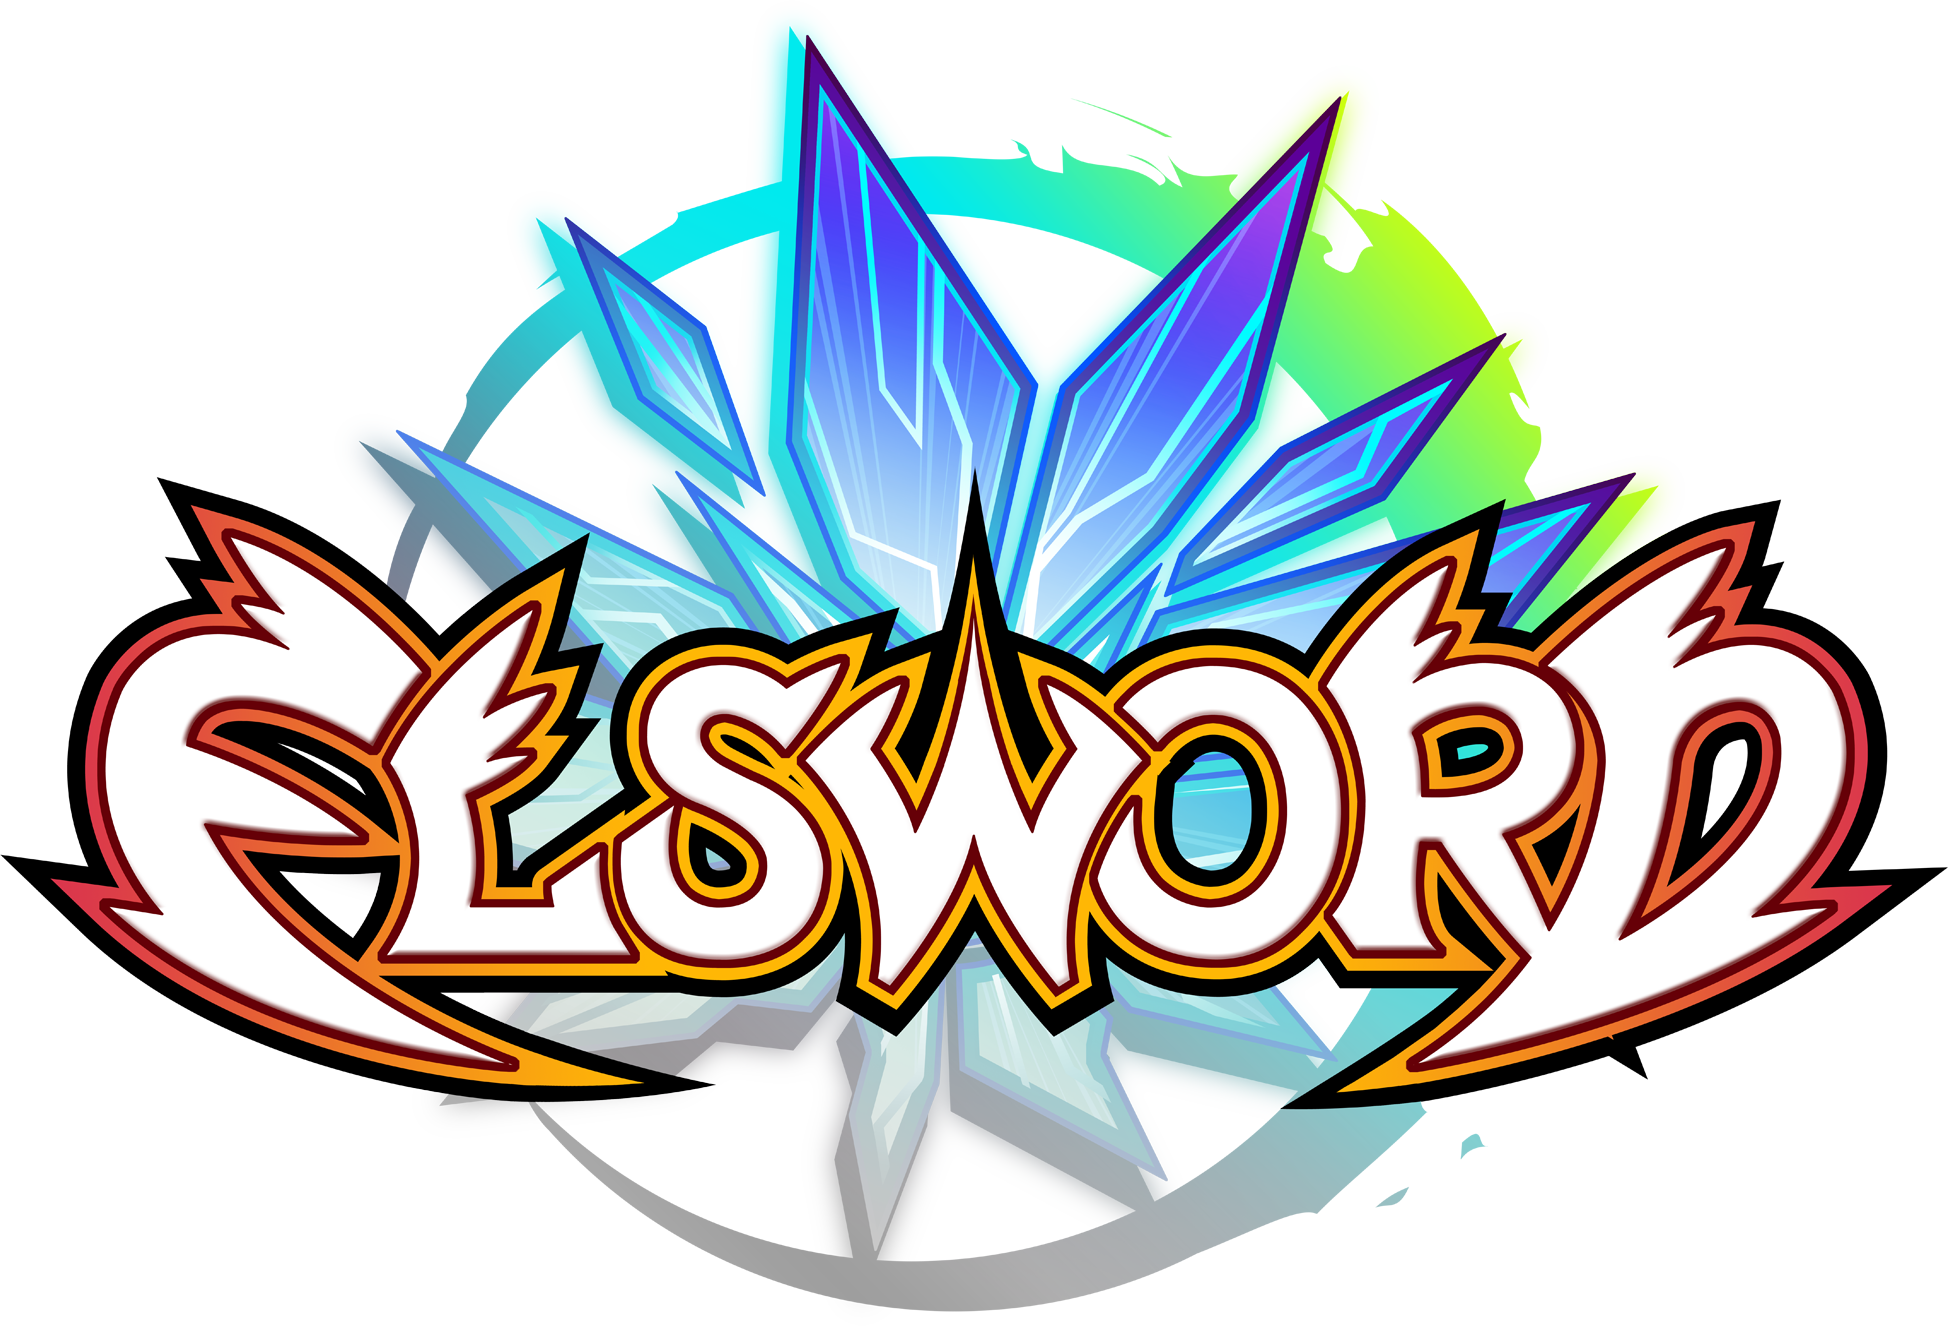 Elsword Hacks 2016 No Survey K Ching Download come online